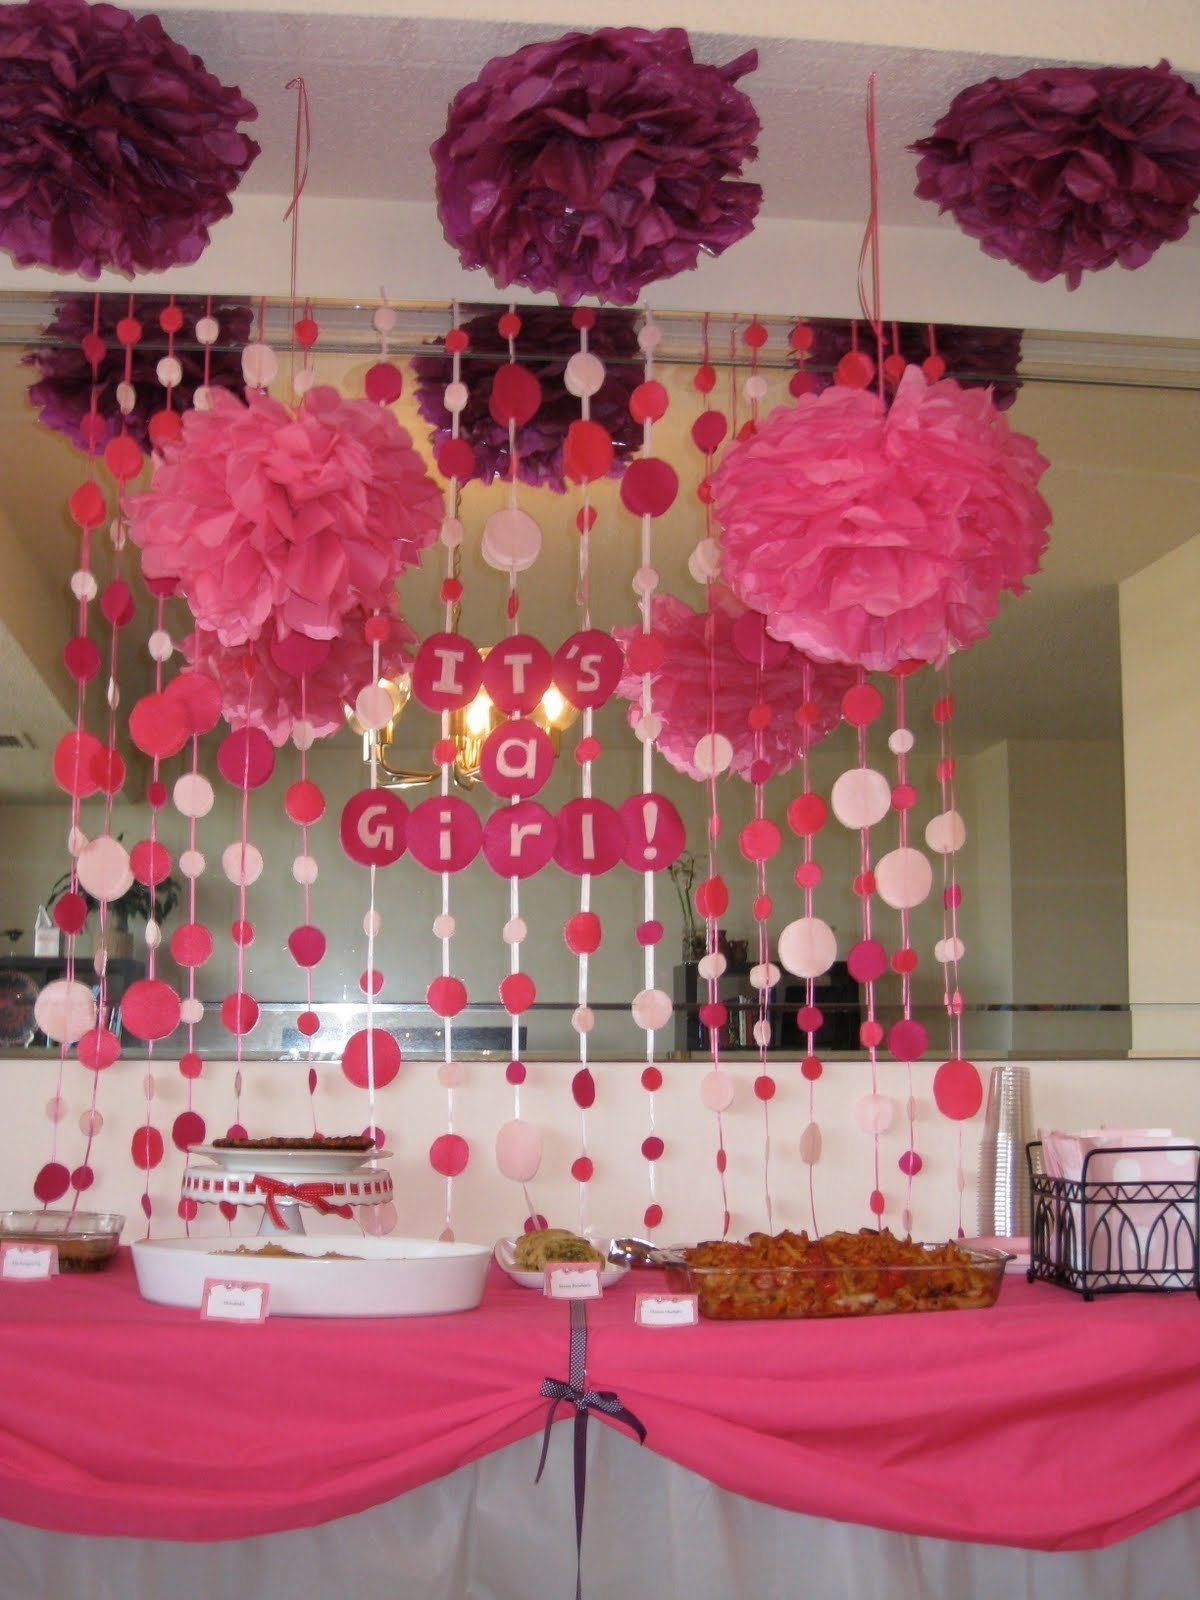 10 Pretty Ideas For A Baby Shower For A Girl cute baby shower themes for a girl liviroom decors beautiful 2021